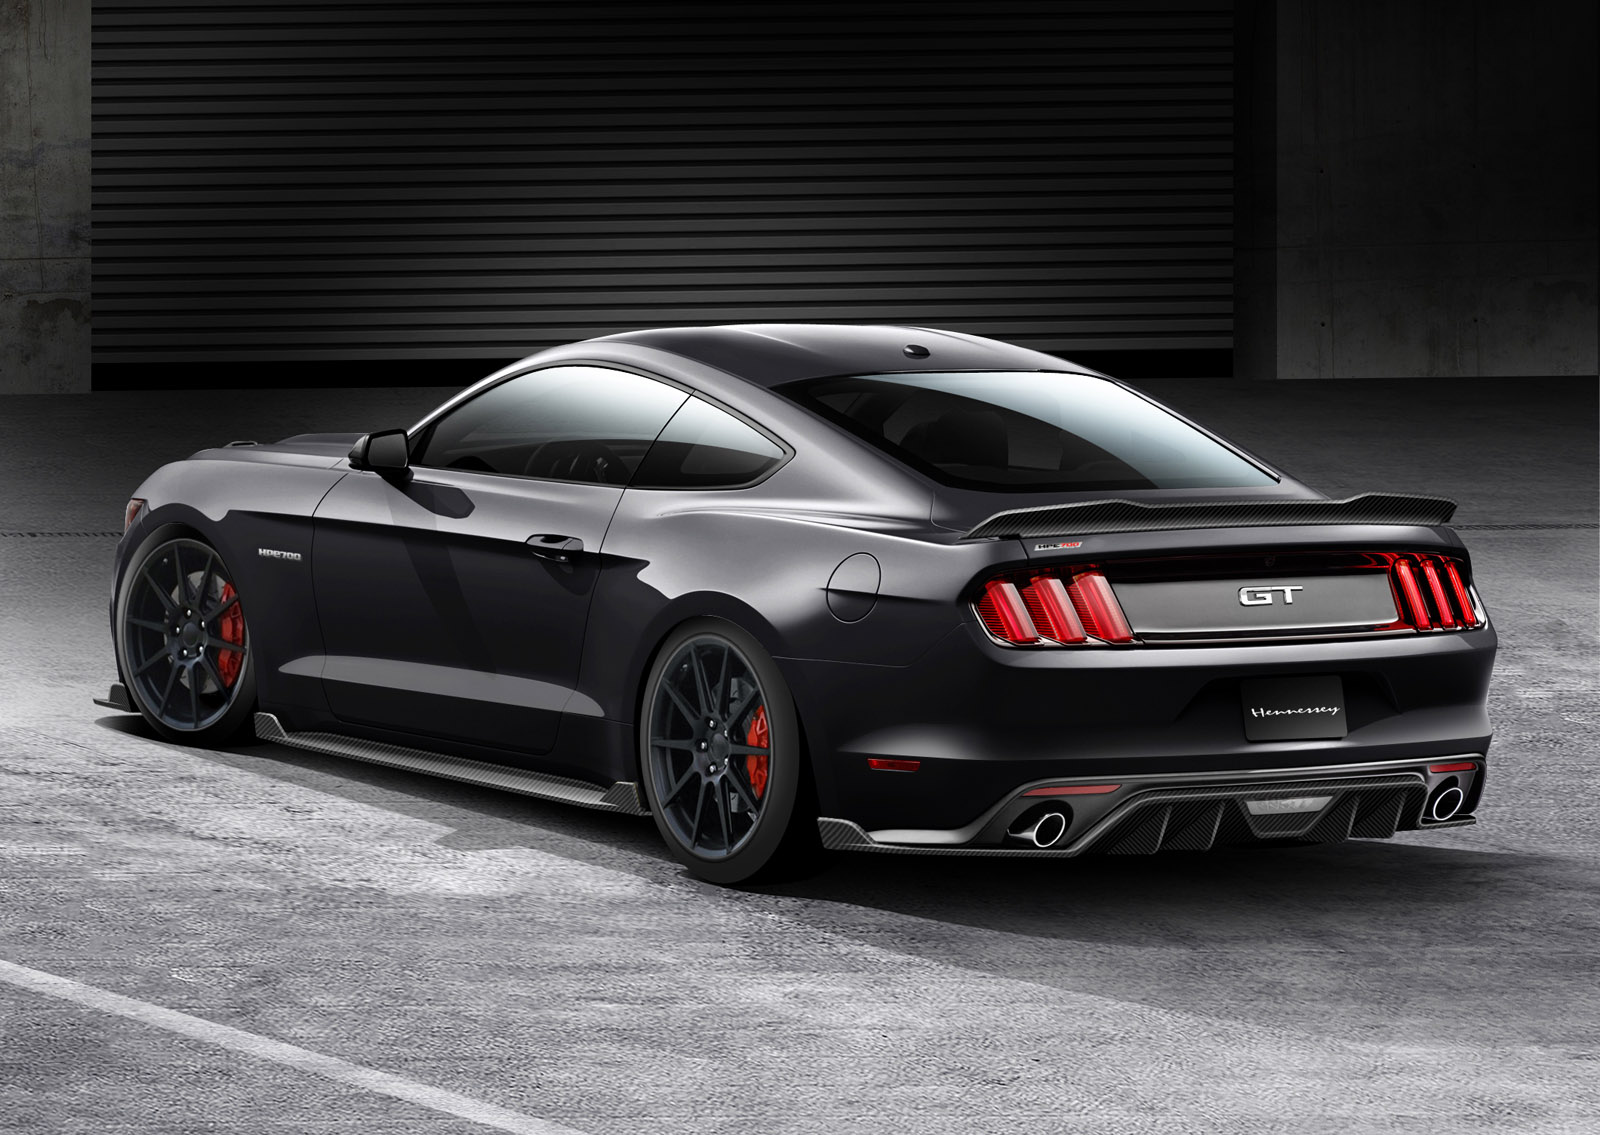 john hennessey test drives stock 2015 mustang gt up to 150 mph video. Black Bedroom Furniture Sets. Home Design Ideas